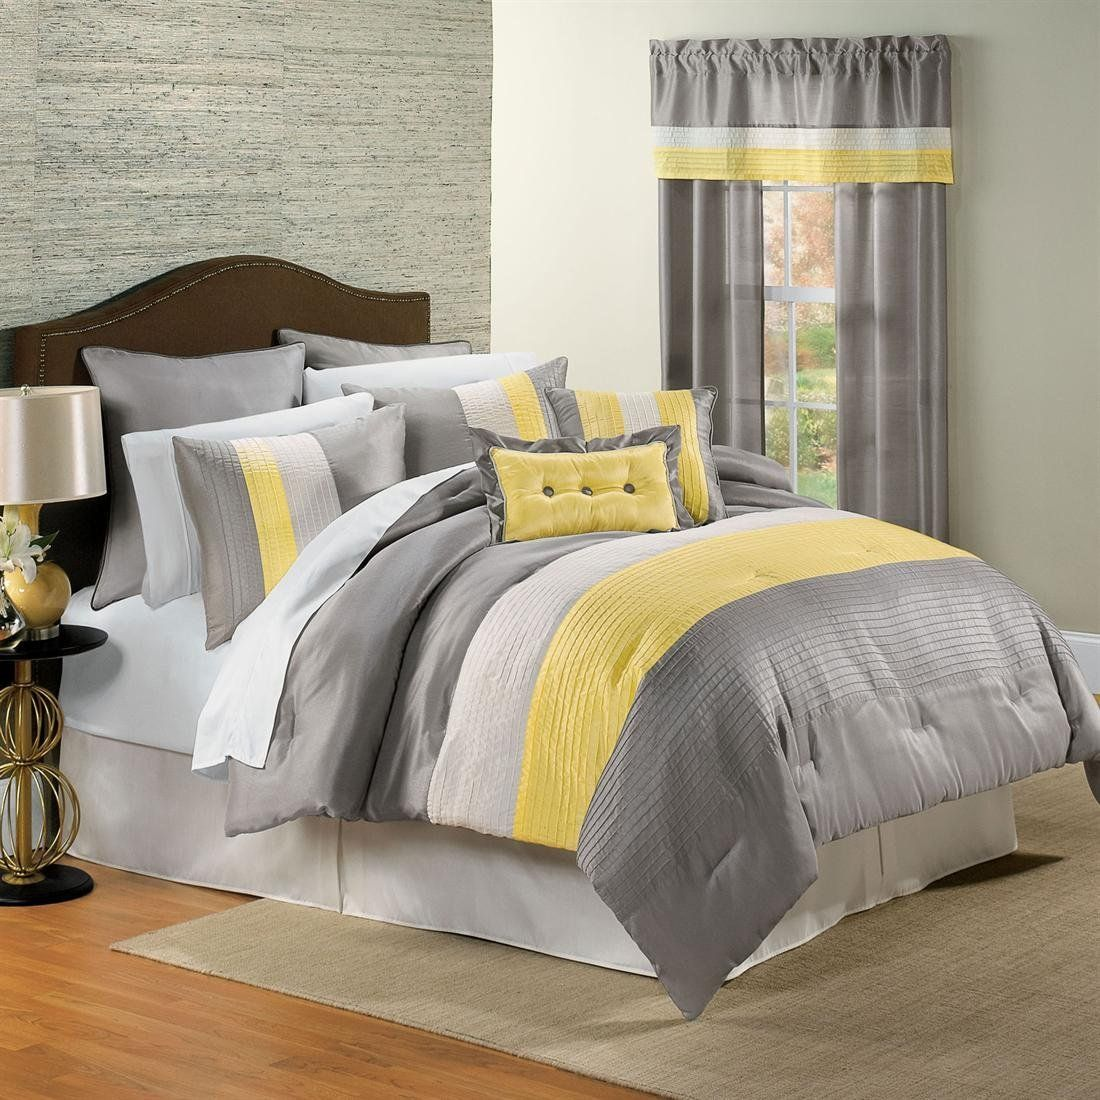 clarissa charcoal piece duvet set comforter cover queen gray